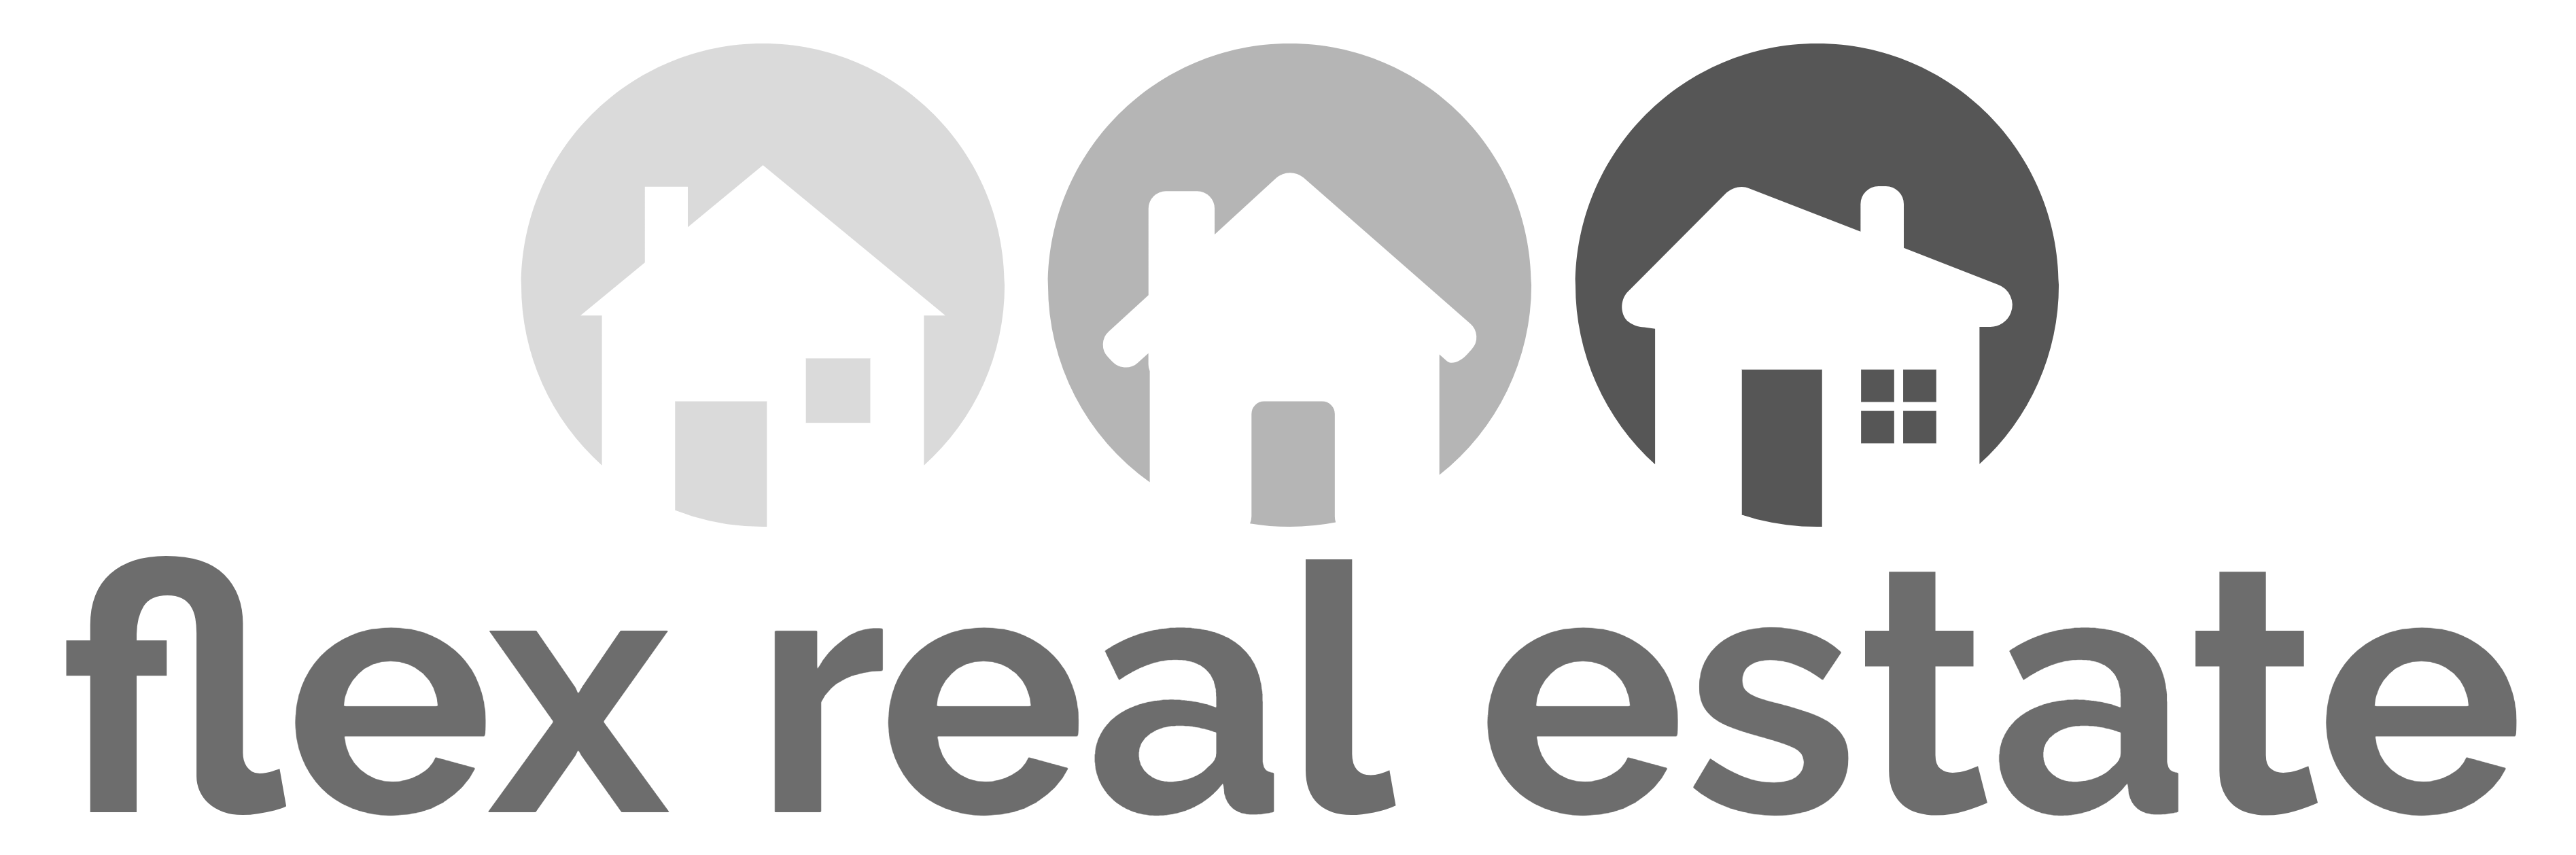 flex-real-estate